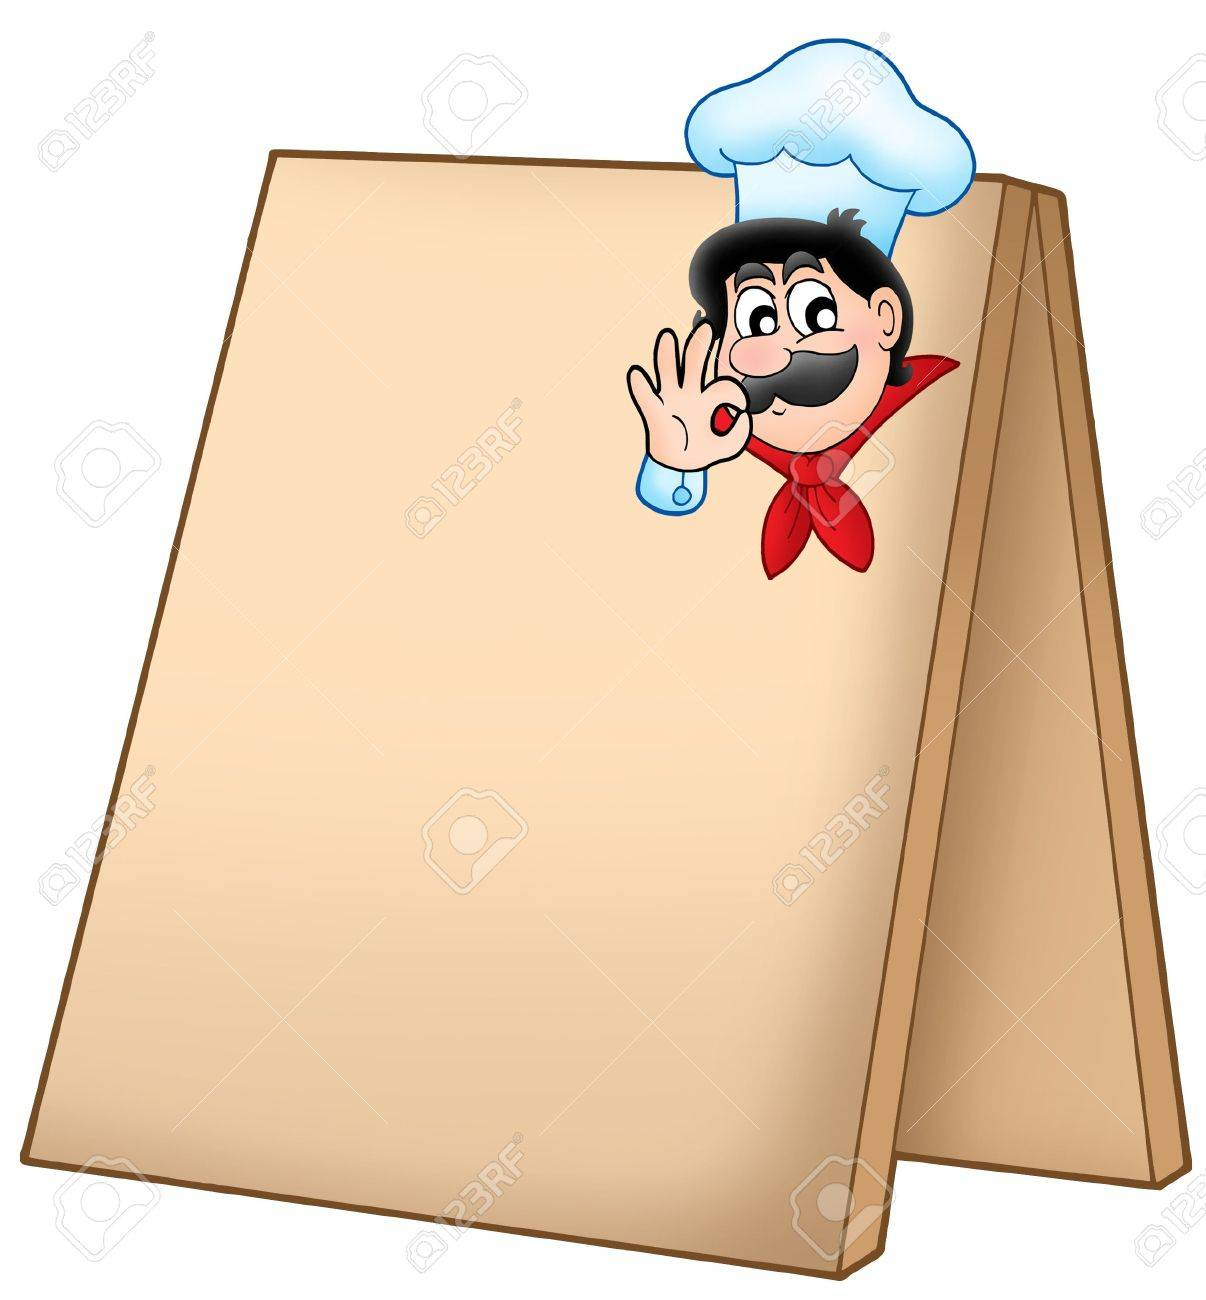 Menu board with cartoon chef - color illustration. Stock Illustration - 4477159